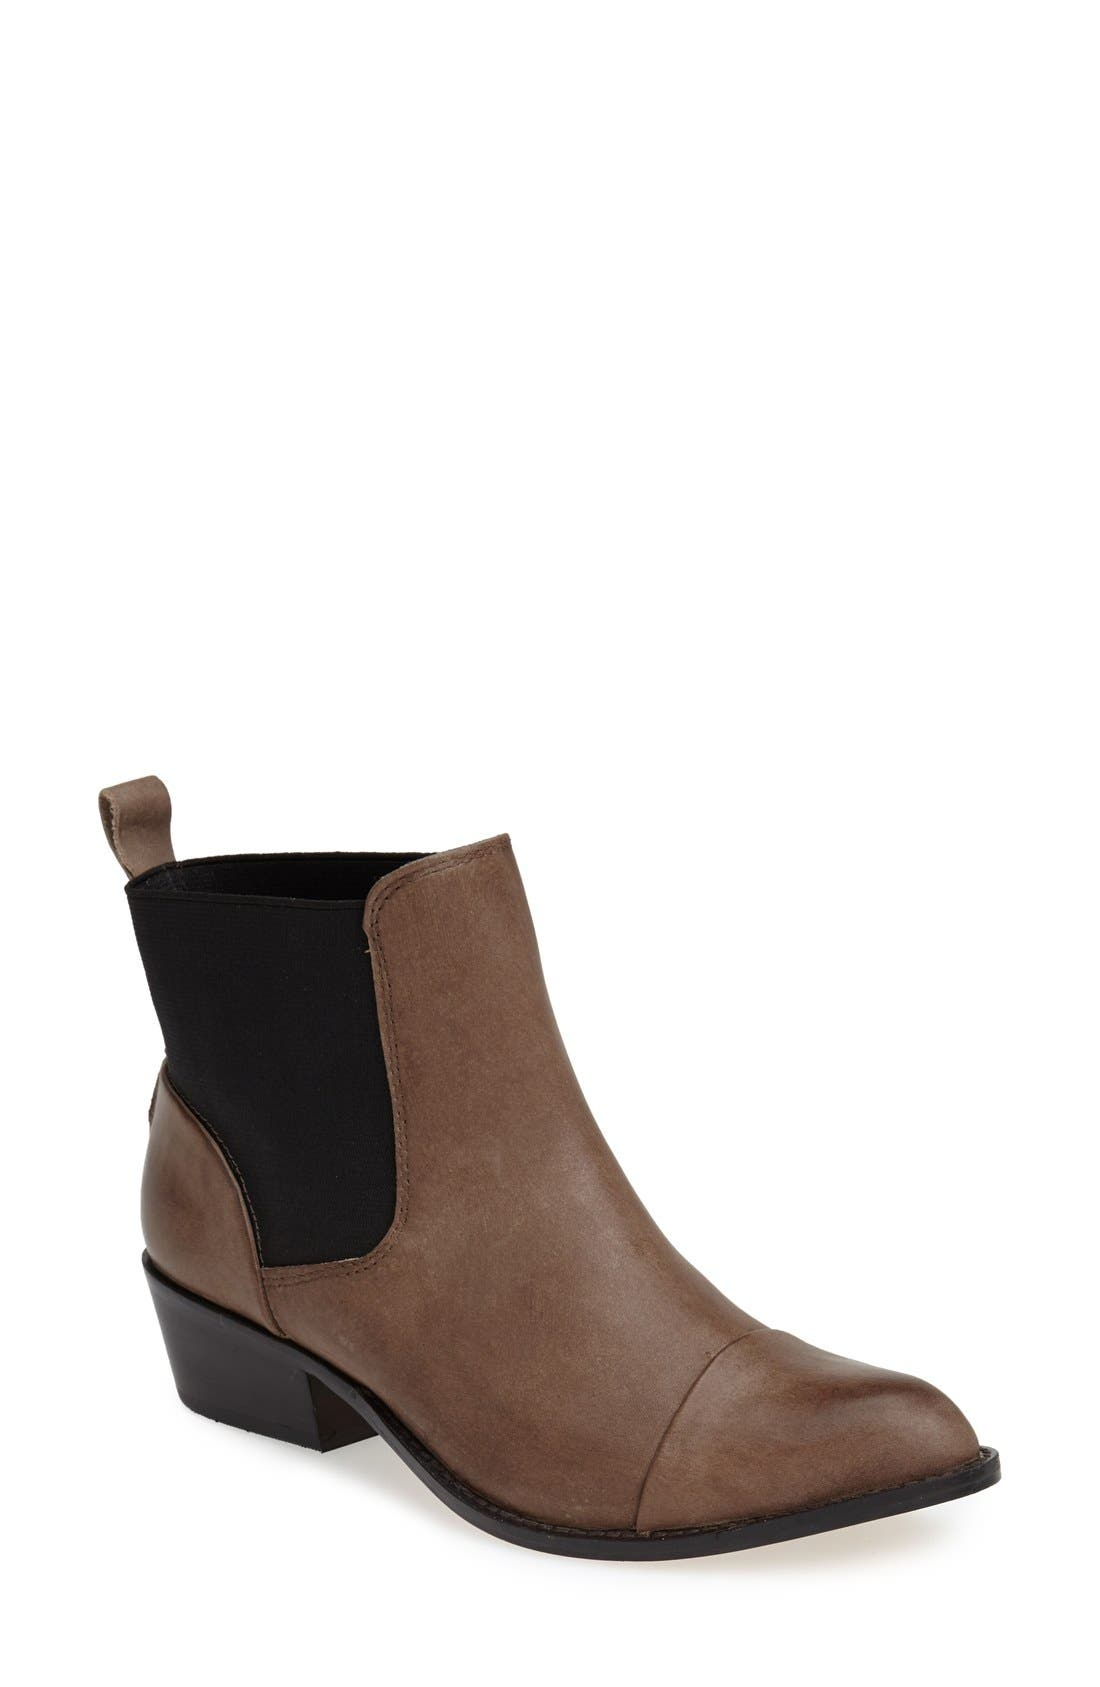 Alternate Image 1 Selected - DV by Dolce Vita 'Vancie' Leather Bootie (Women)